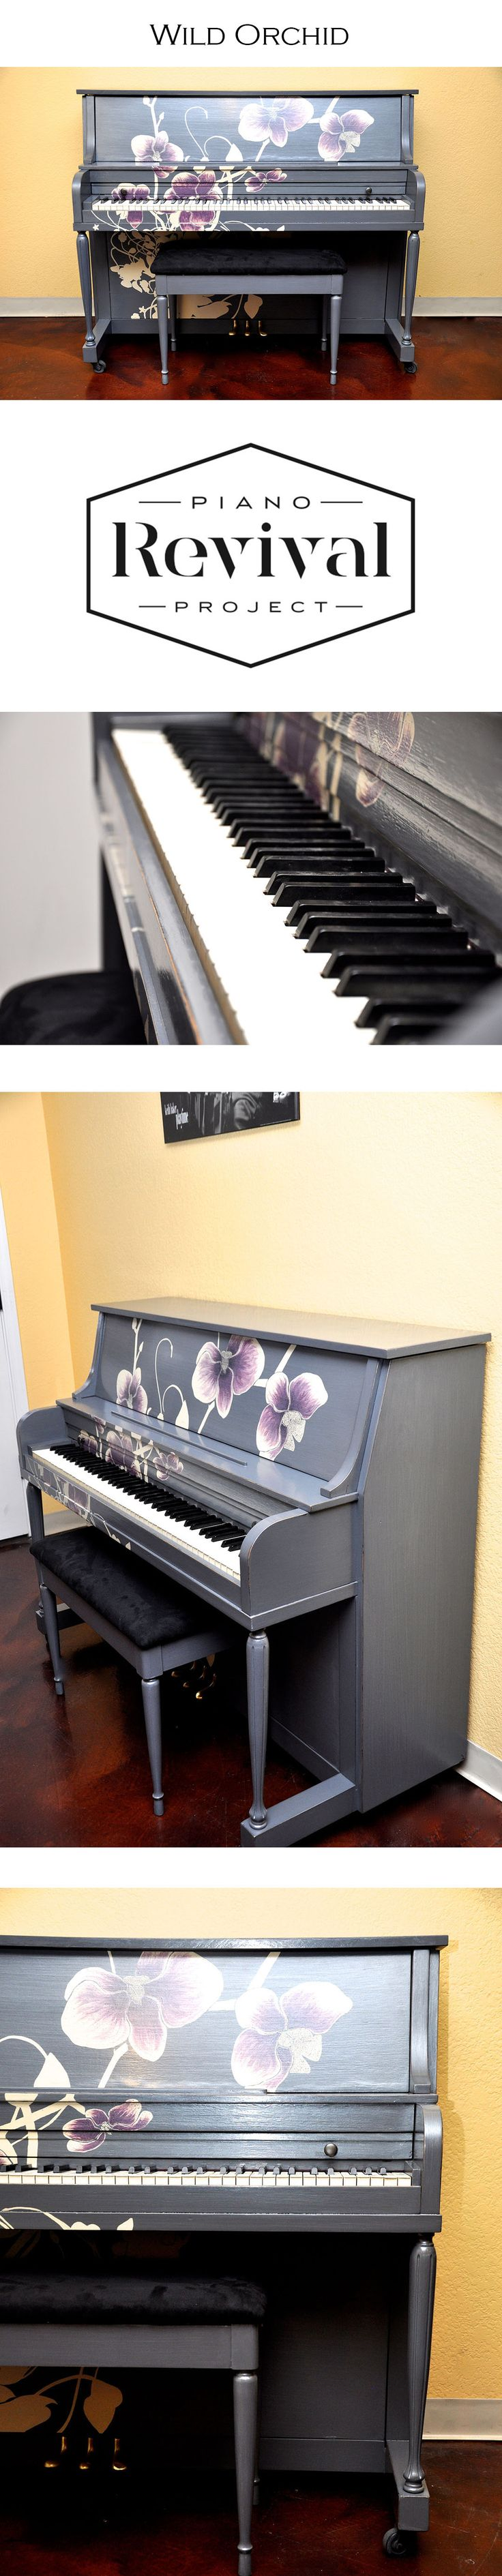 Hand painted studio upright by Piano Revival Project artist Heather. Key words: Shabby Chic, DIY, Piano, Upright, Up-cycle, Repurpose, Reclaimed Wood, Painting, My First Piano, Piano Revival Project. #paintedpiano